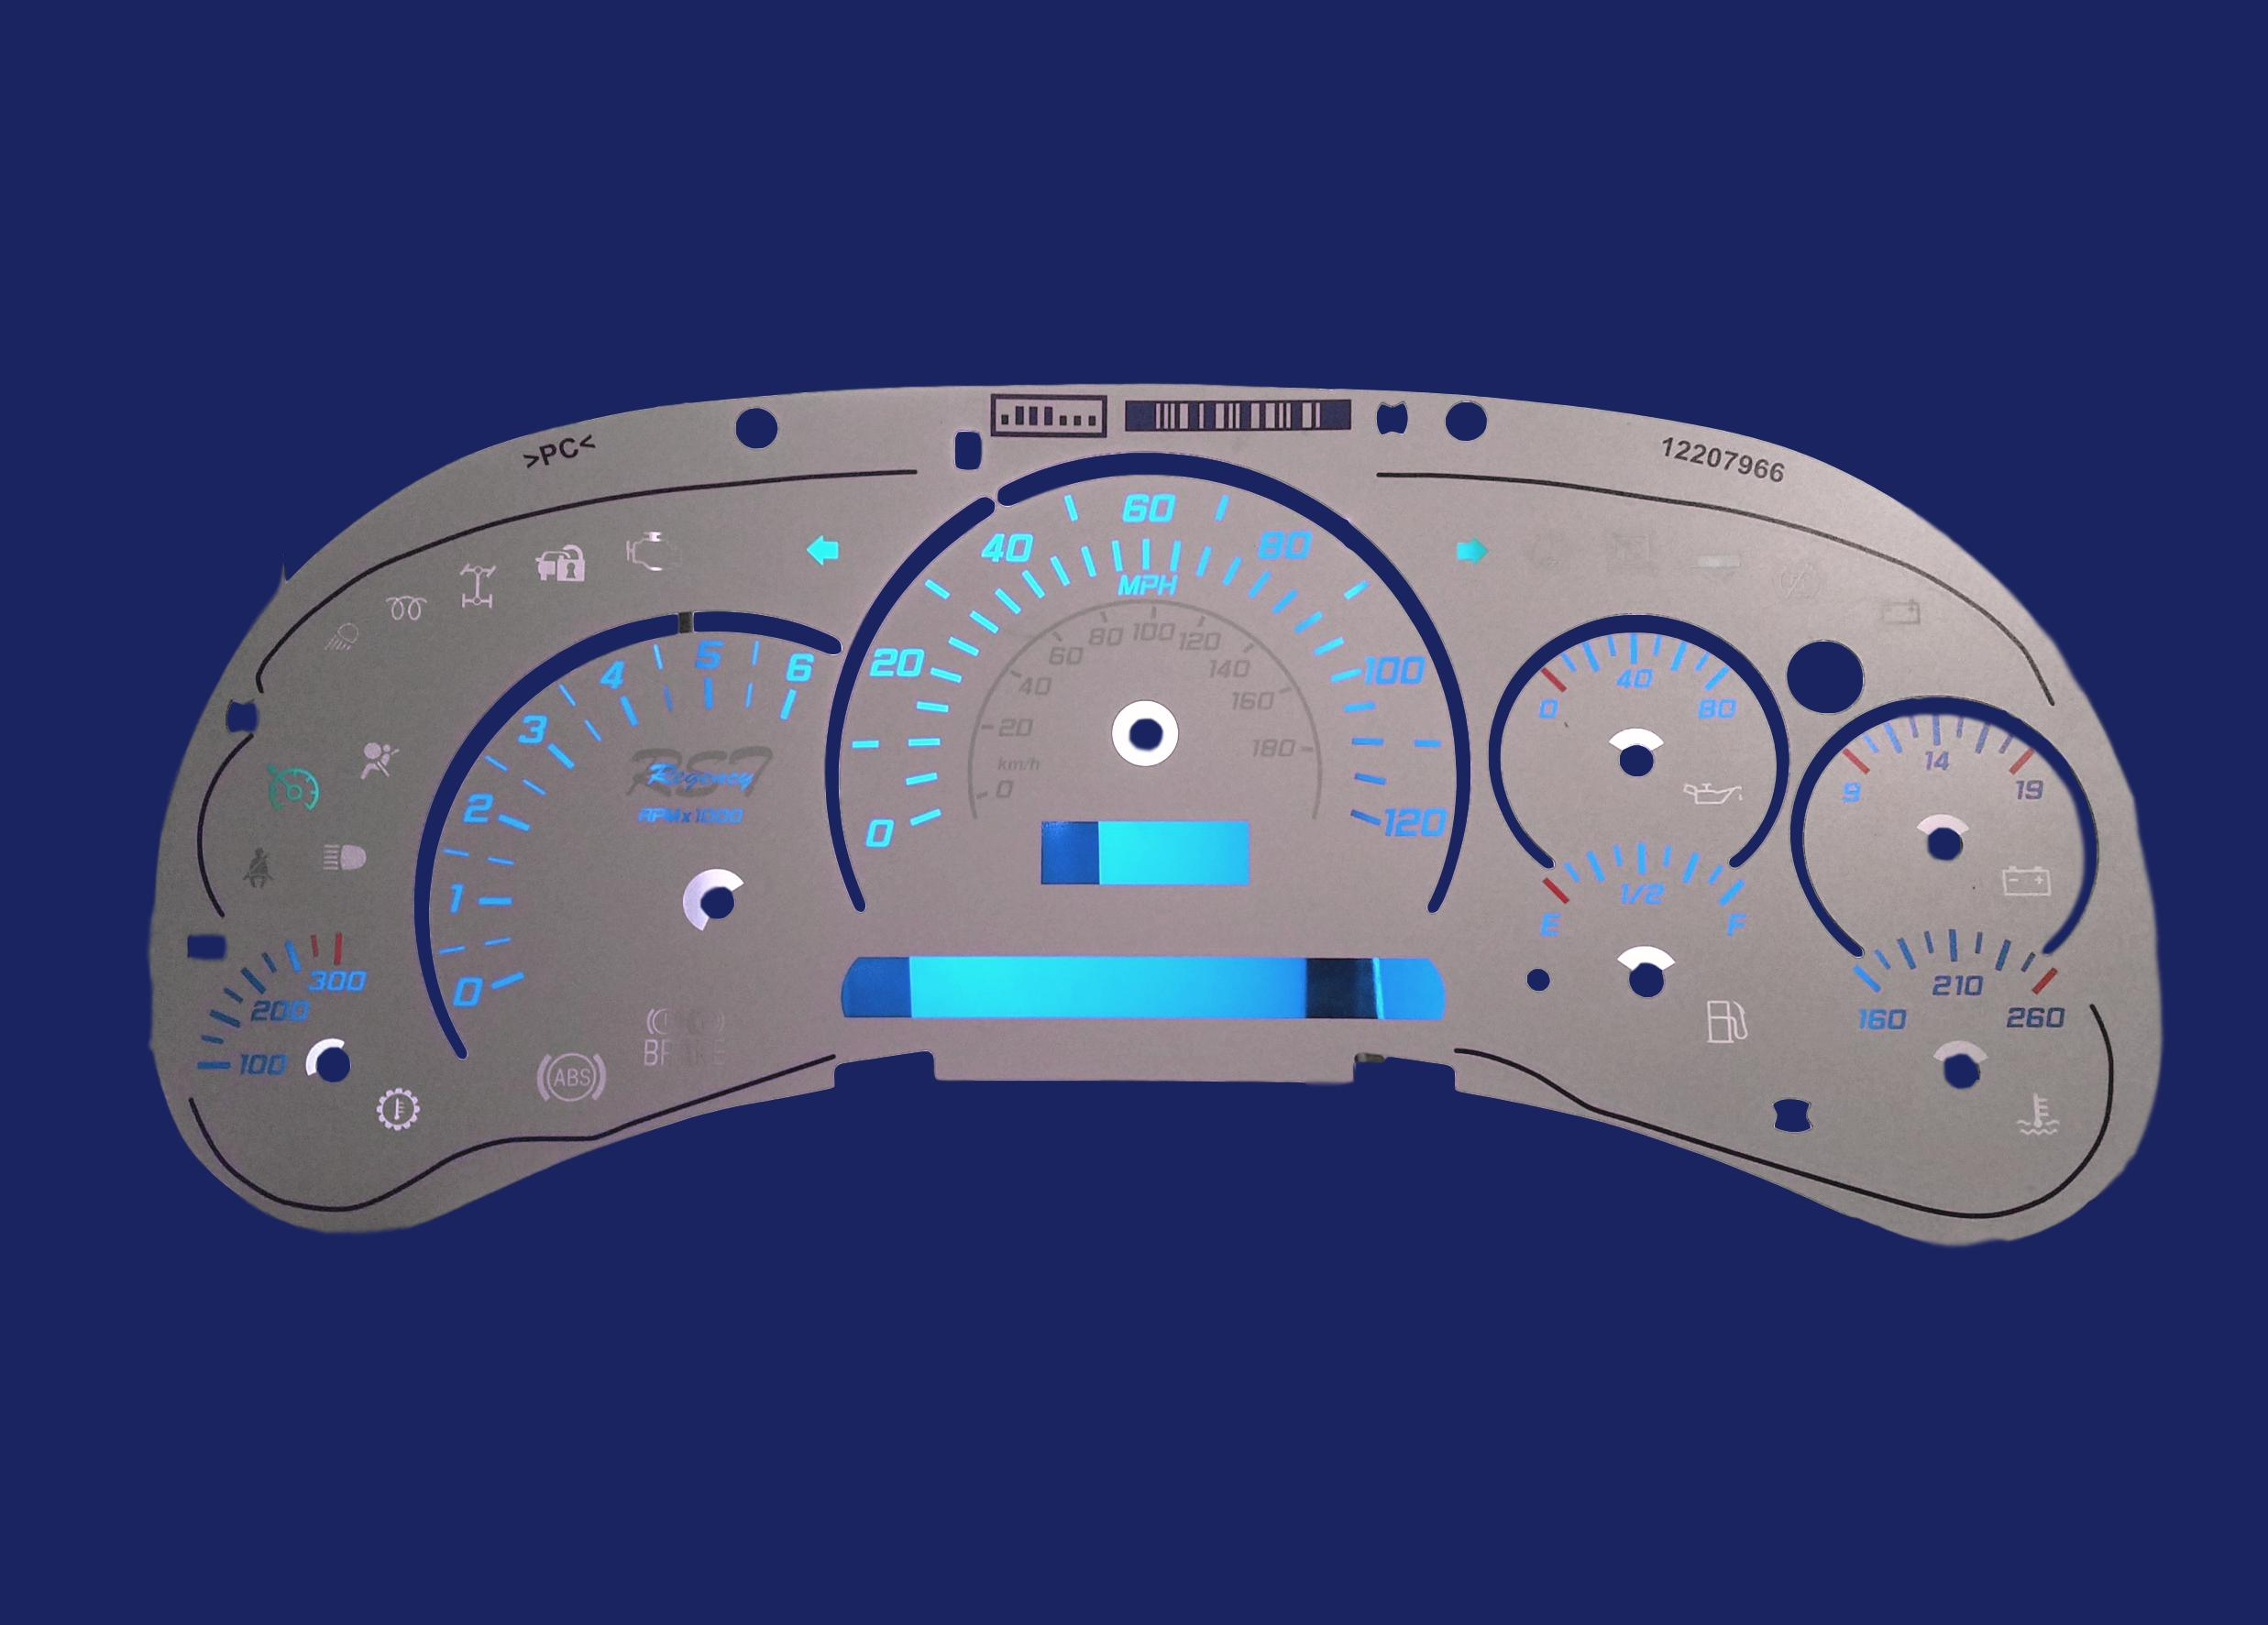 03-06 GM Instrument Cluster Faceplate Overlay - White with clear scales  Style C